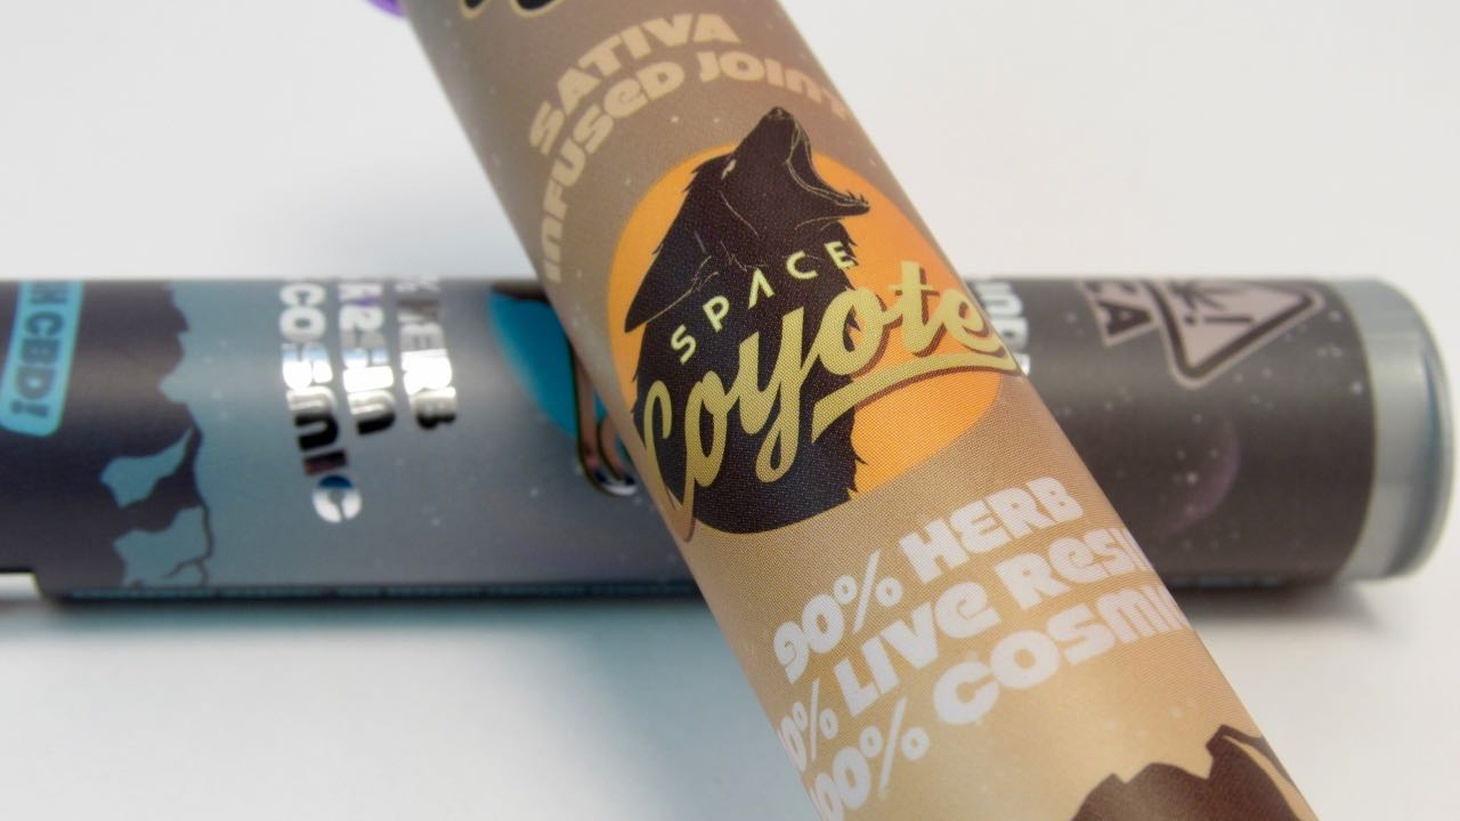 Space Coyote pre-rolled joints.